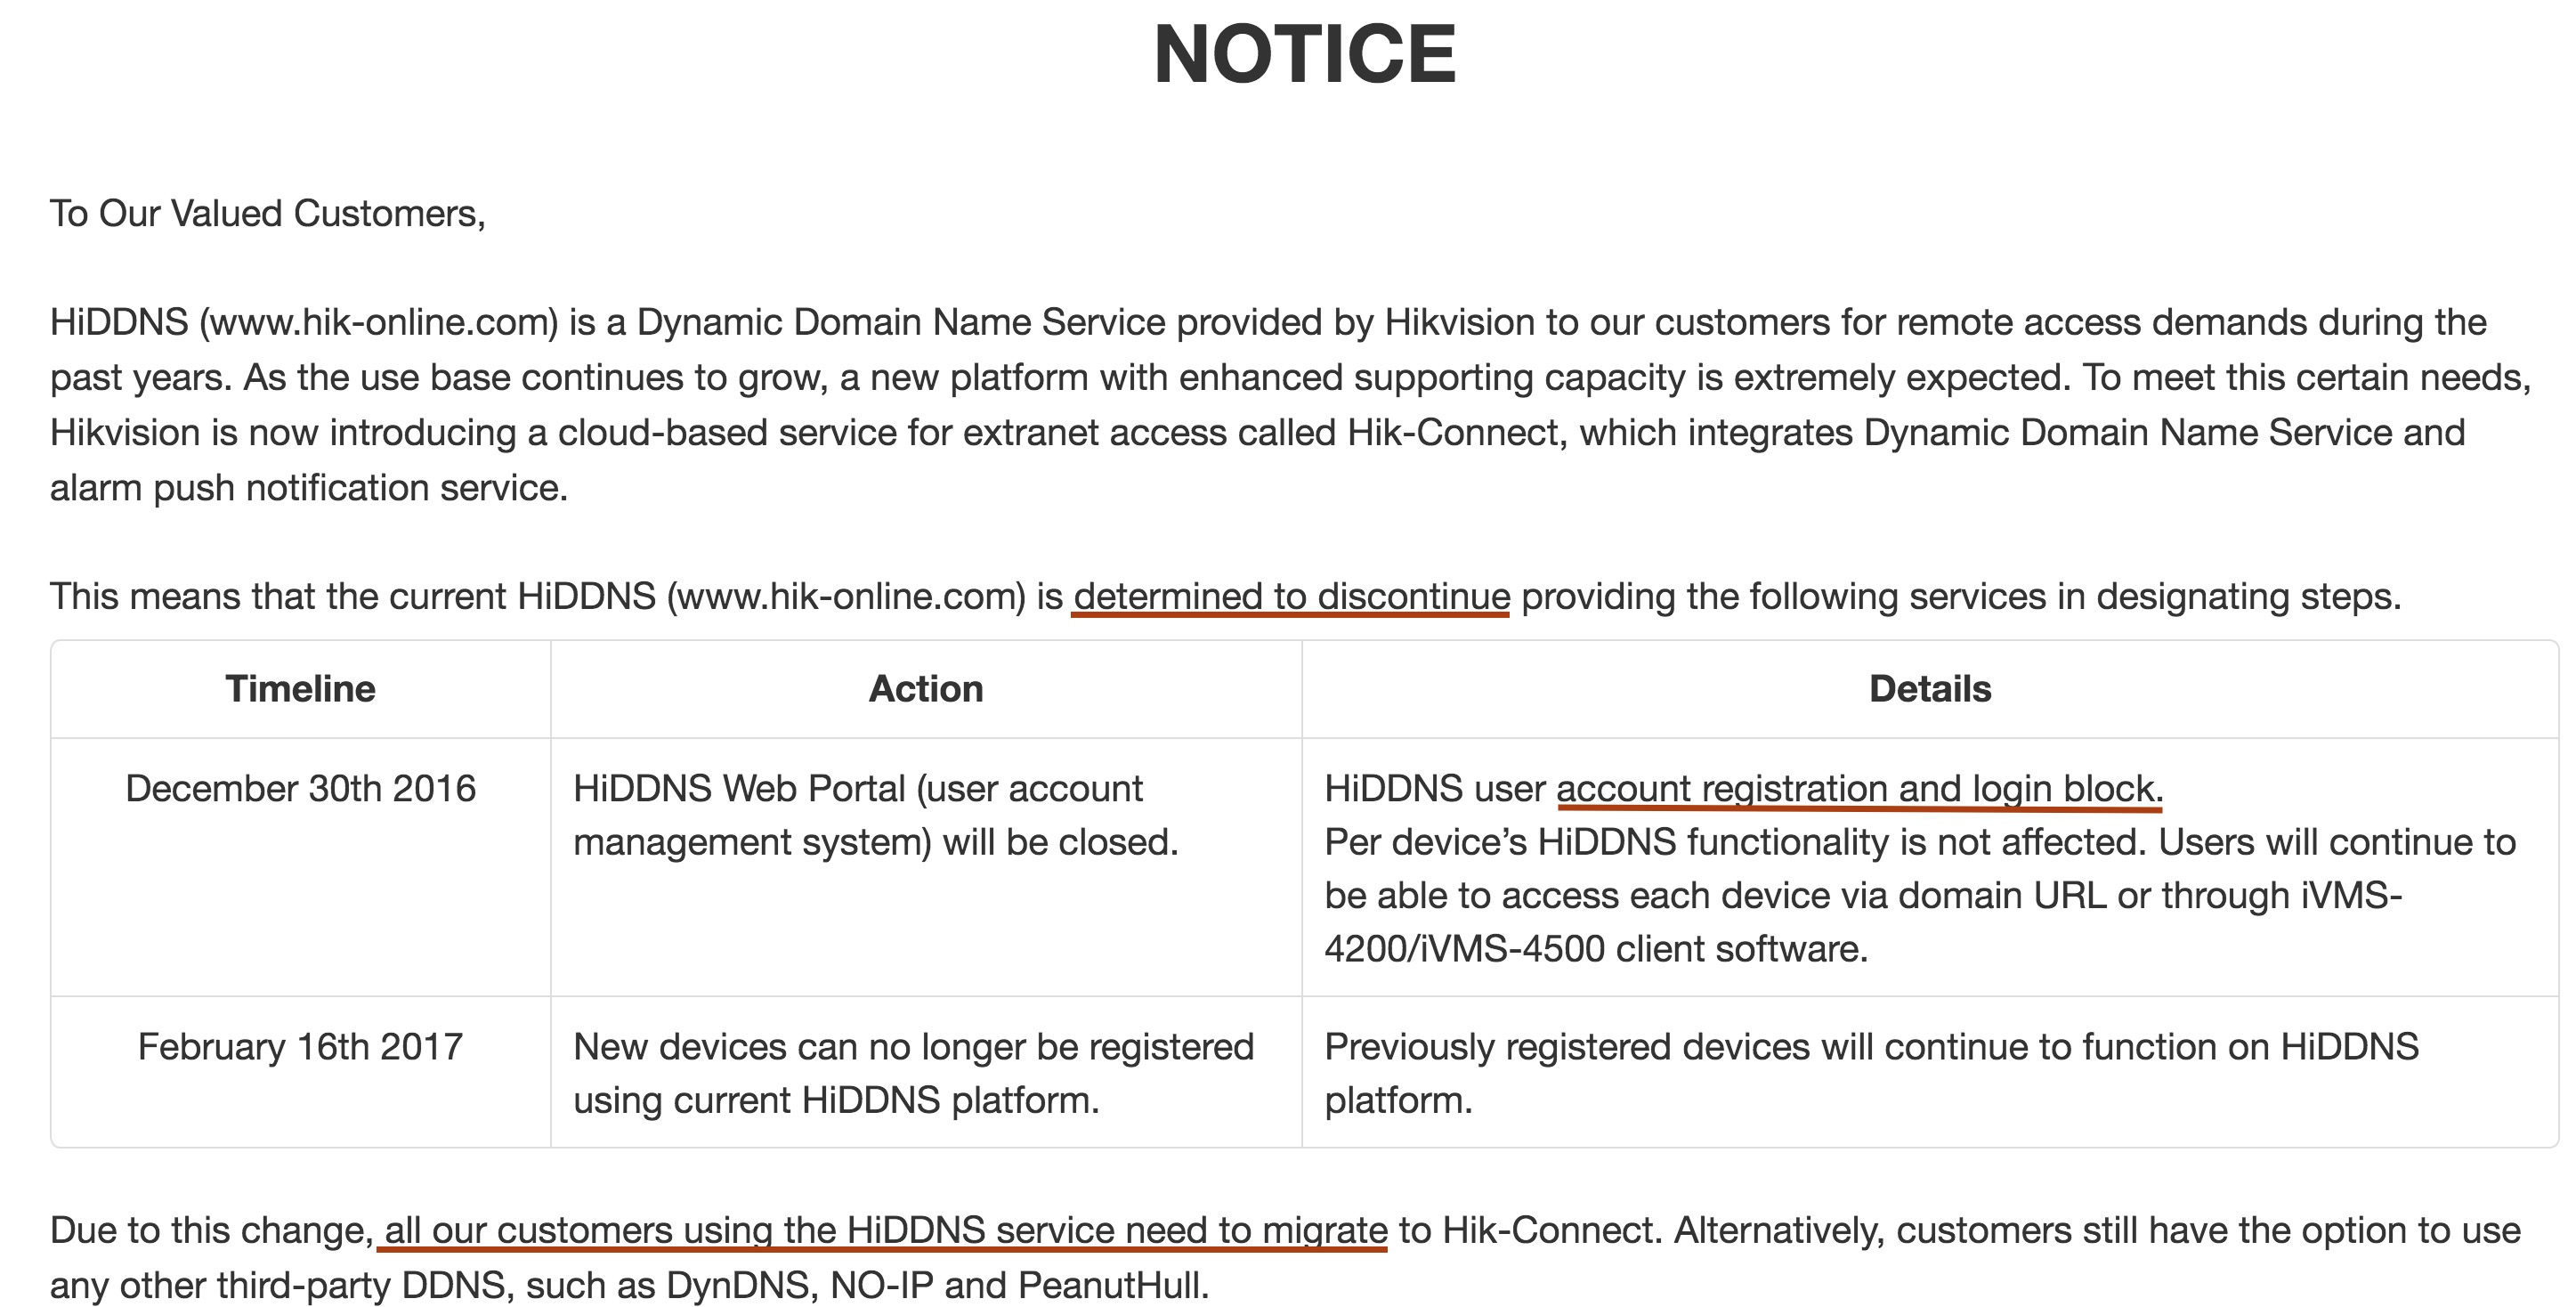 Hikvision Discontinuing Online Service